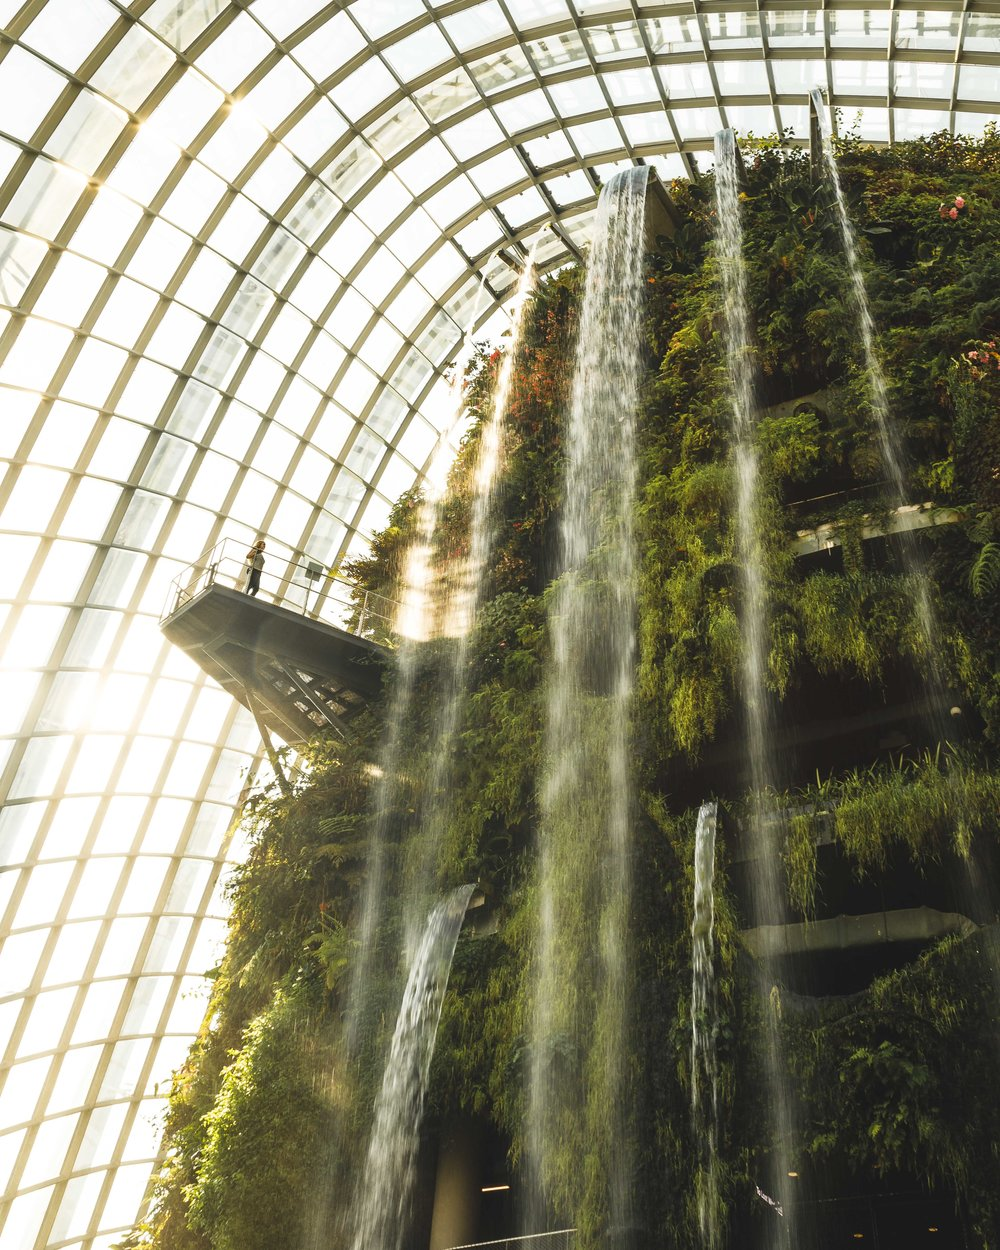 Instagrammable Spots in Singapore: The Cloud Forest